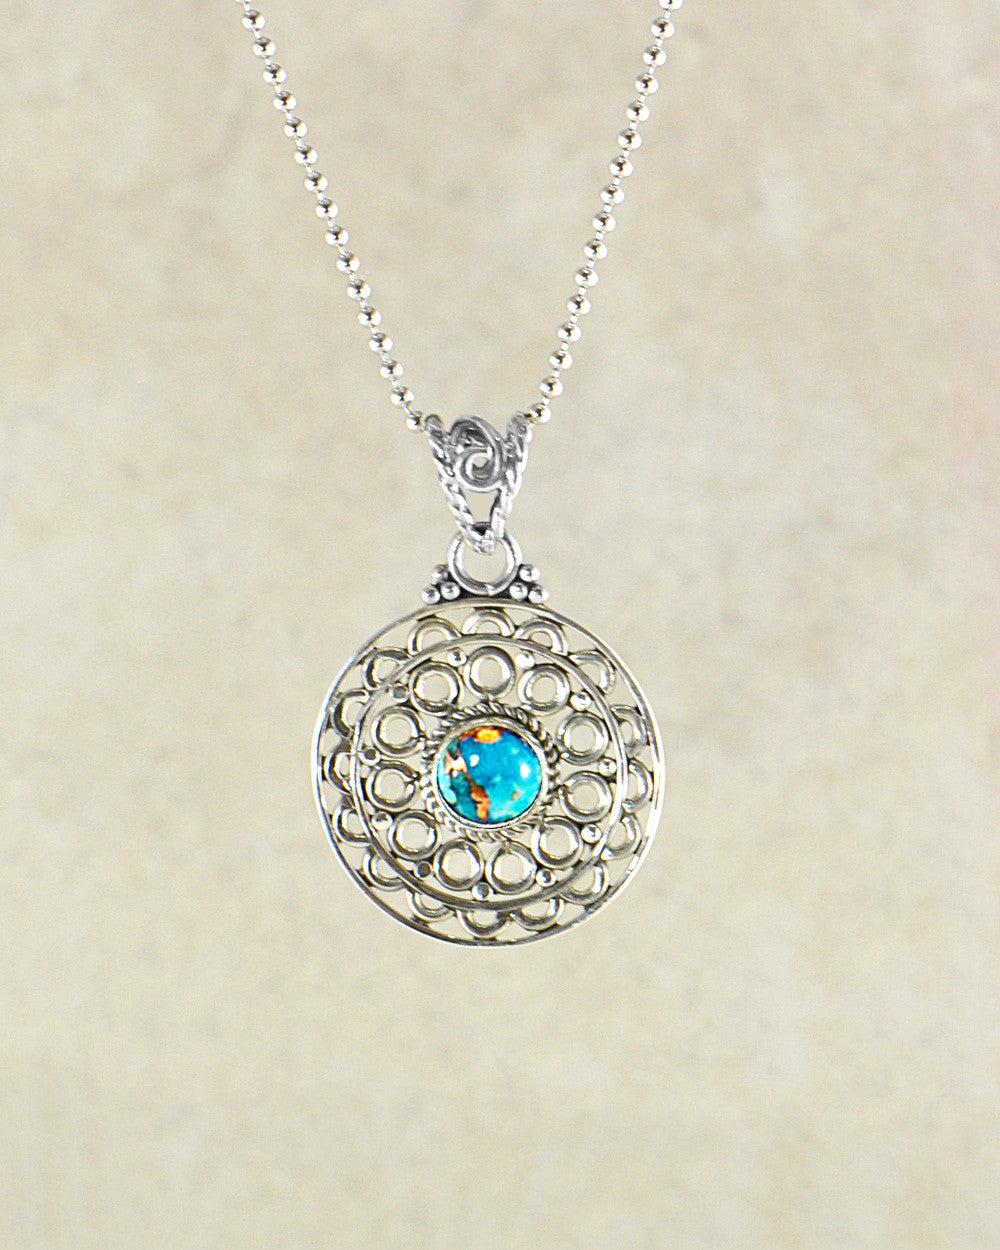 Mandala Pendant Necklace in Sterling Silver - Sivalya